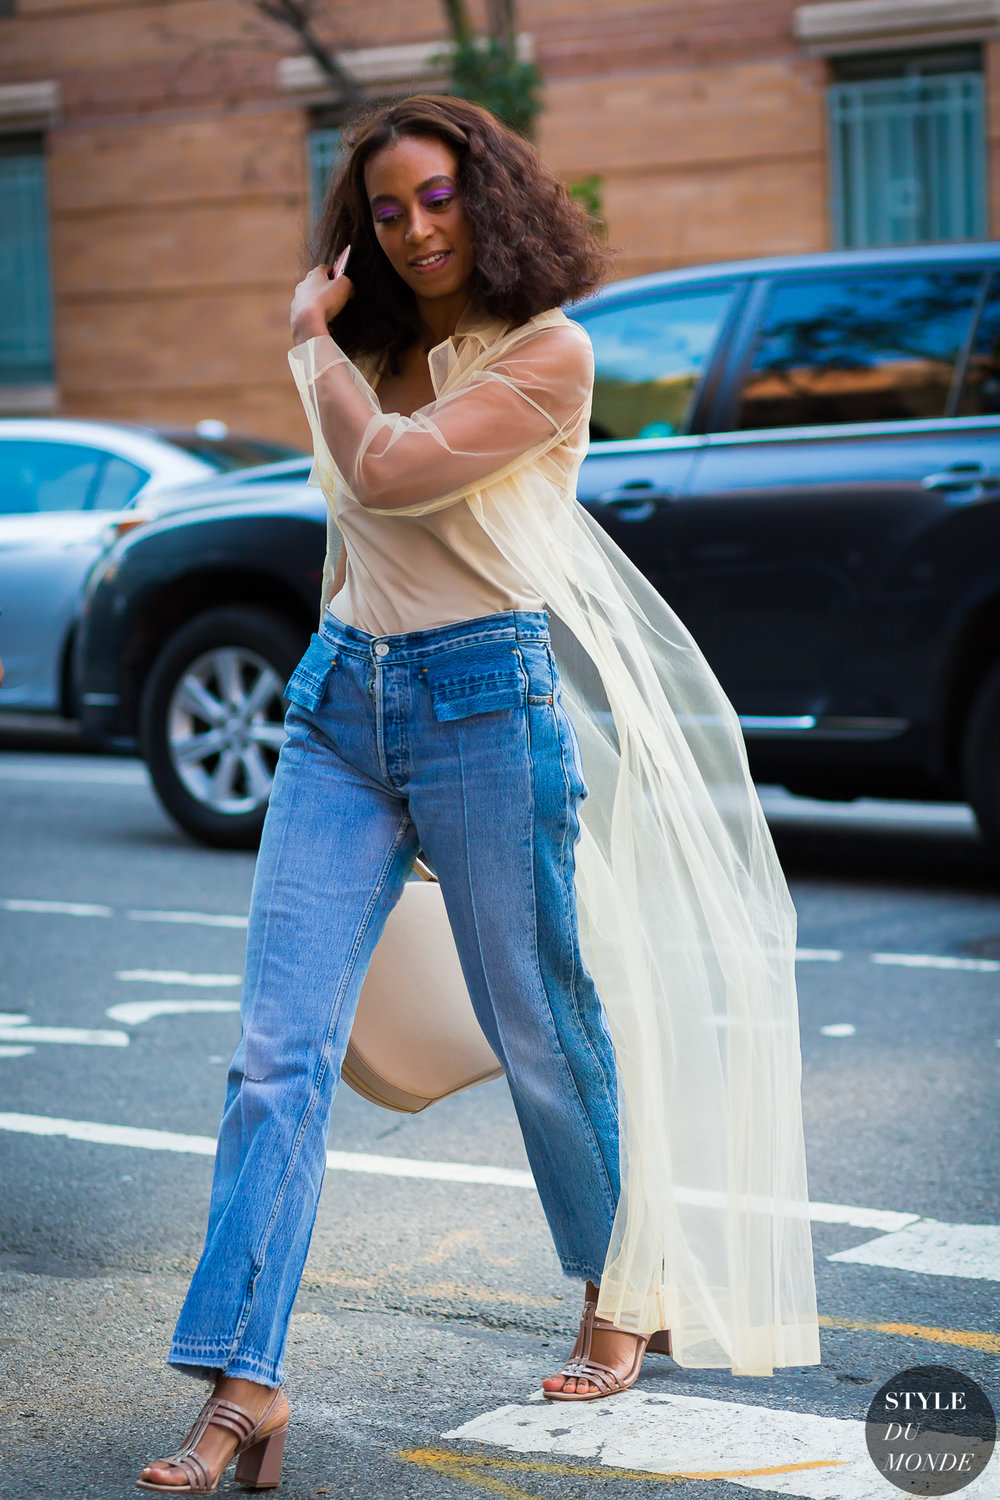 Solange-Knowles-by-STYLEDUMONDE-Street-Style-Fashion-Photography0E2A9152-2.jpg